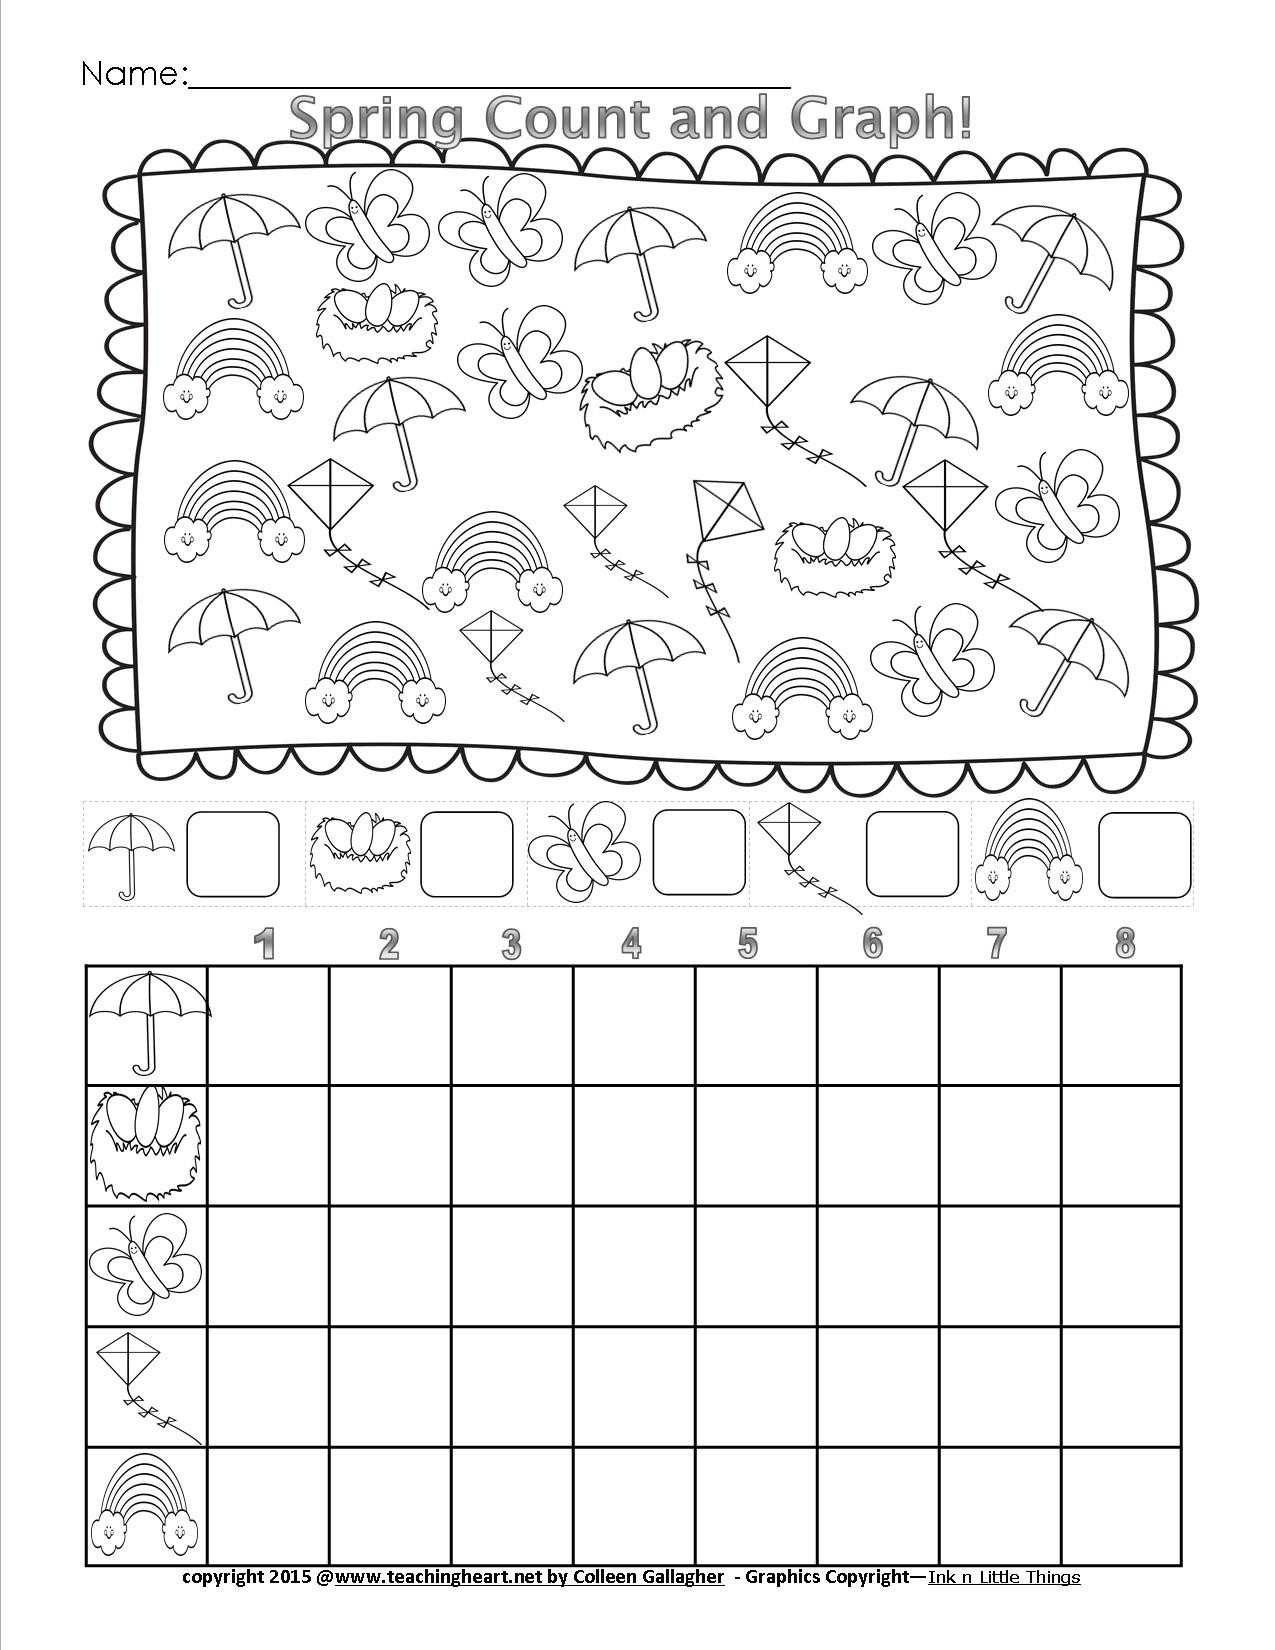 Kindergarten Math sorting Worksheets Spring Count and Graph Free Teaching Heart Blog Graphing